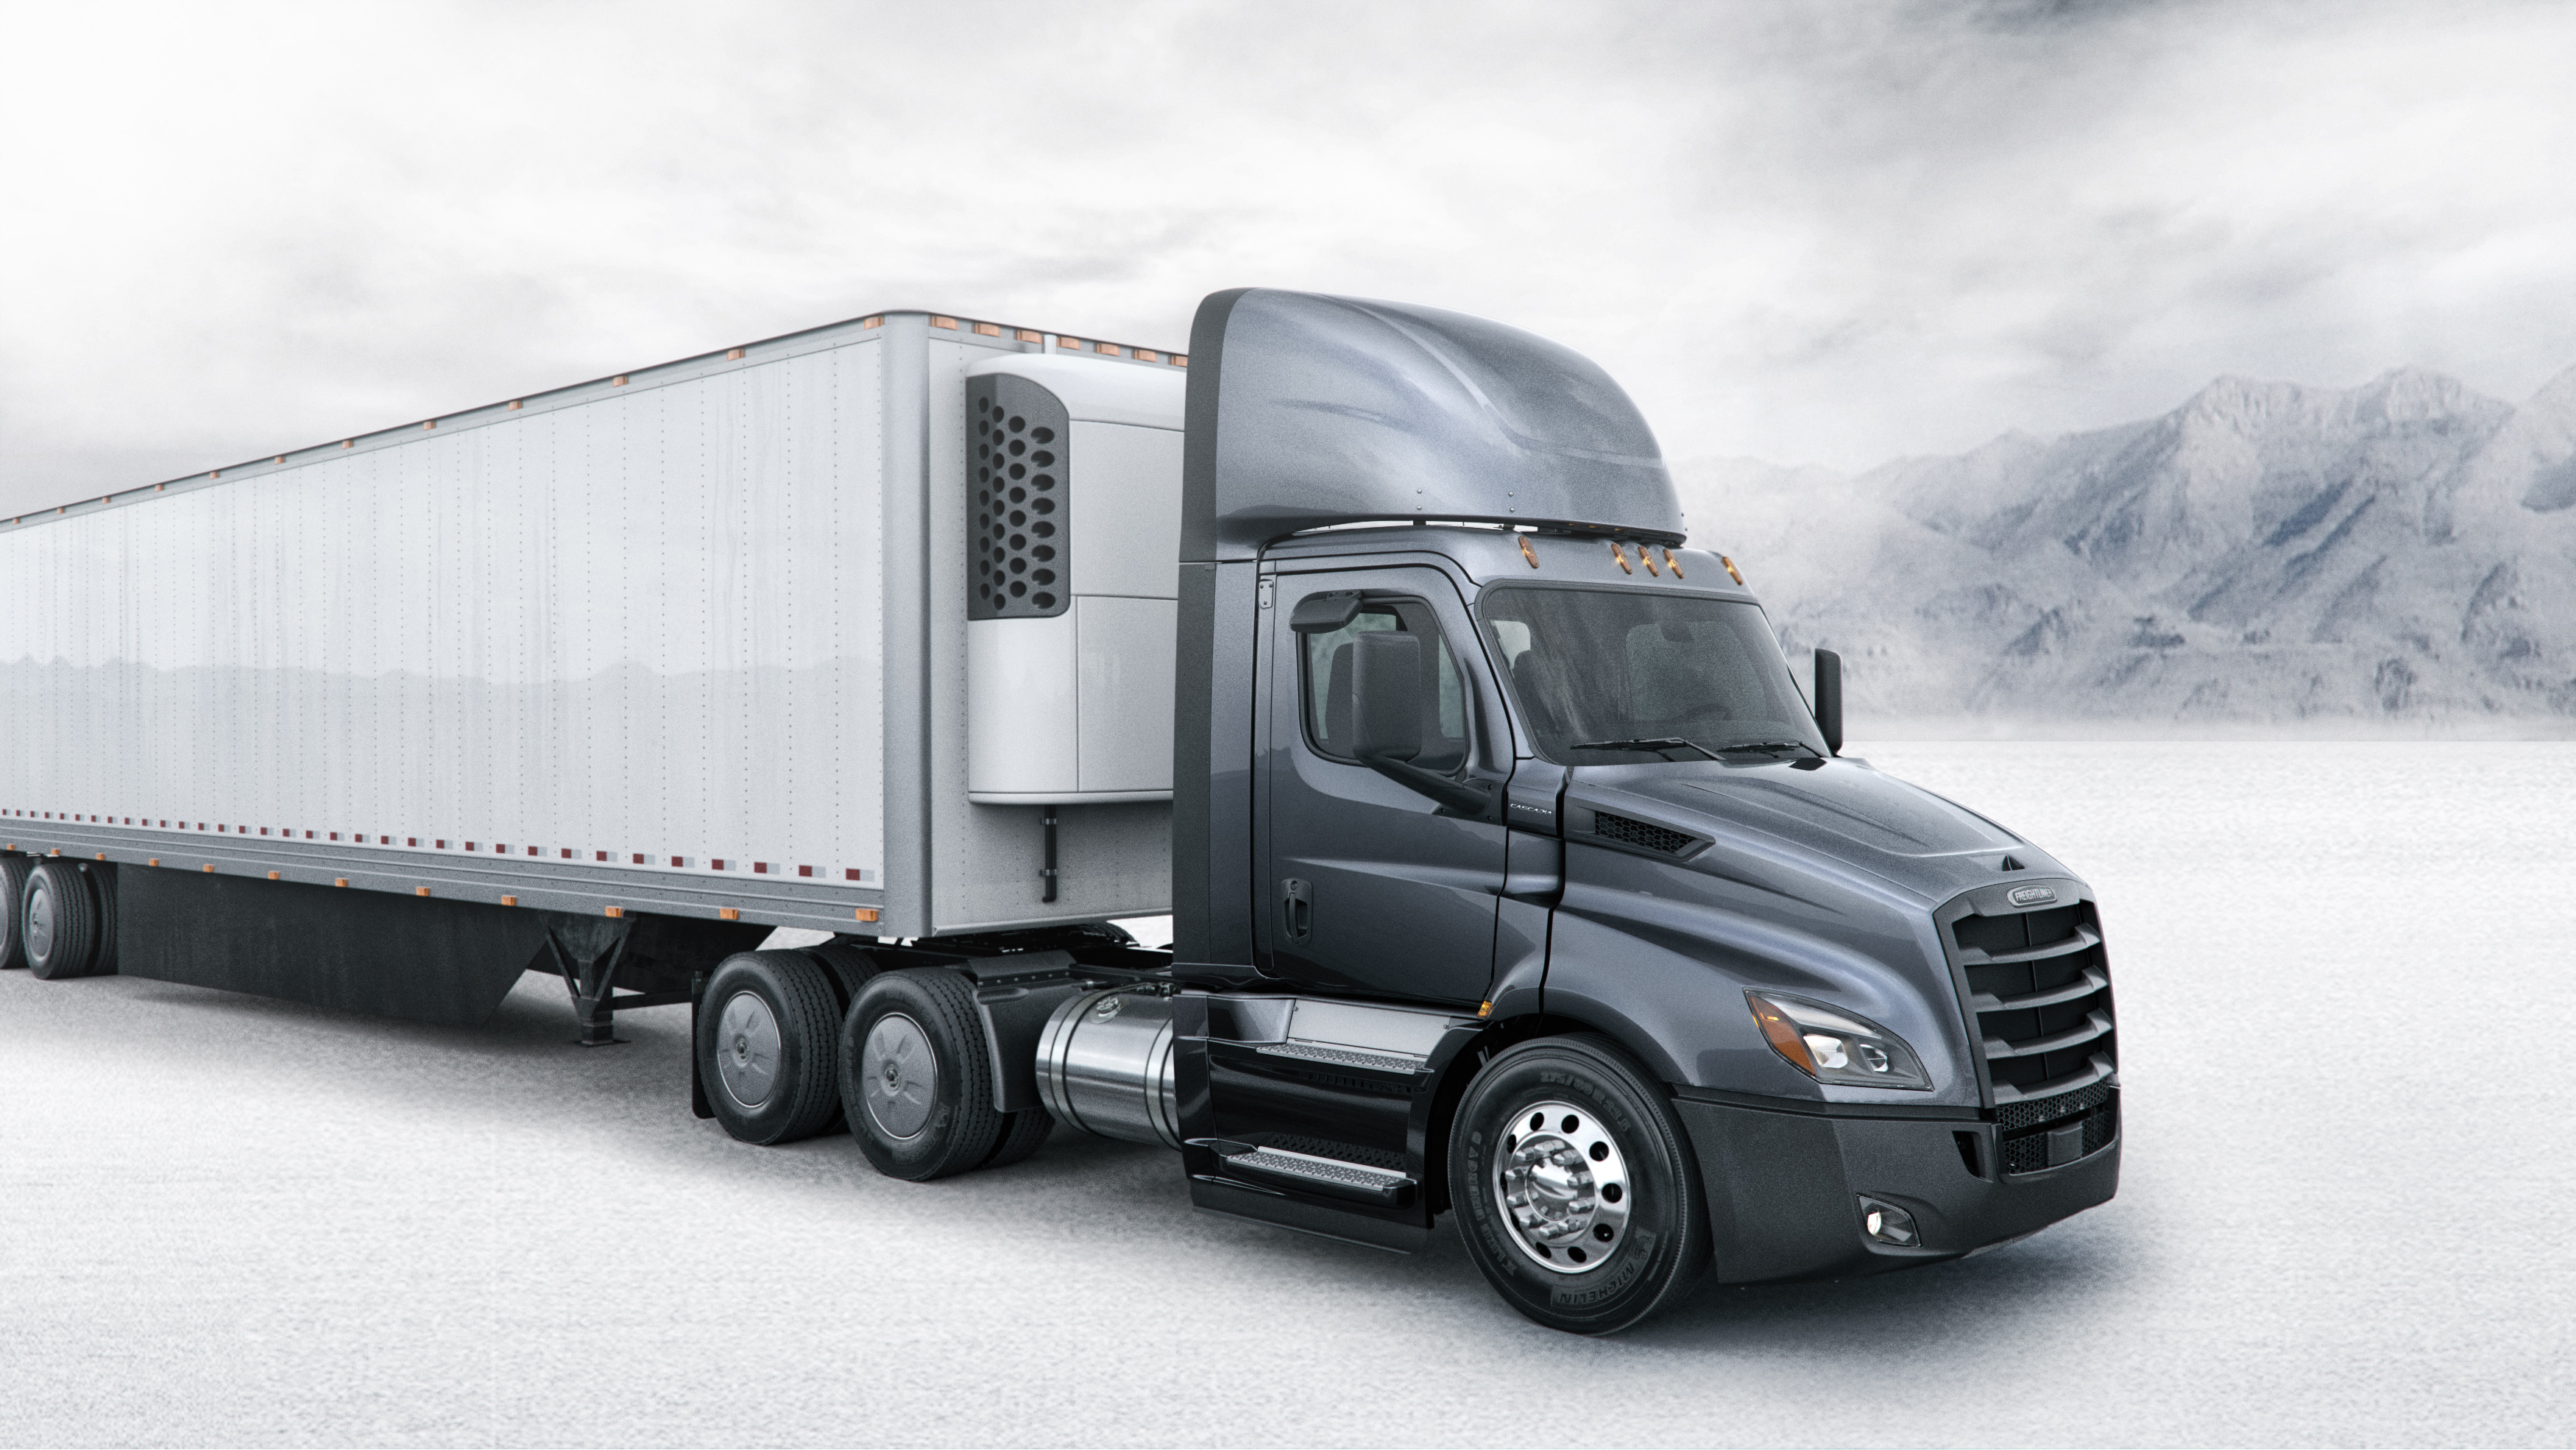 Freightliner's new Cascadia in production - Truck News